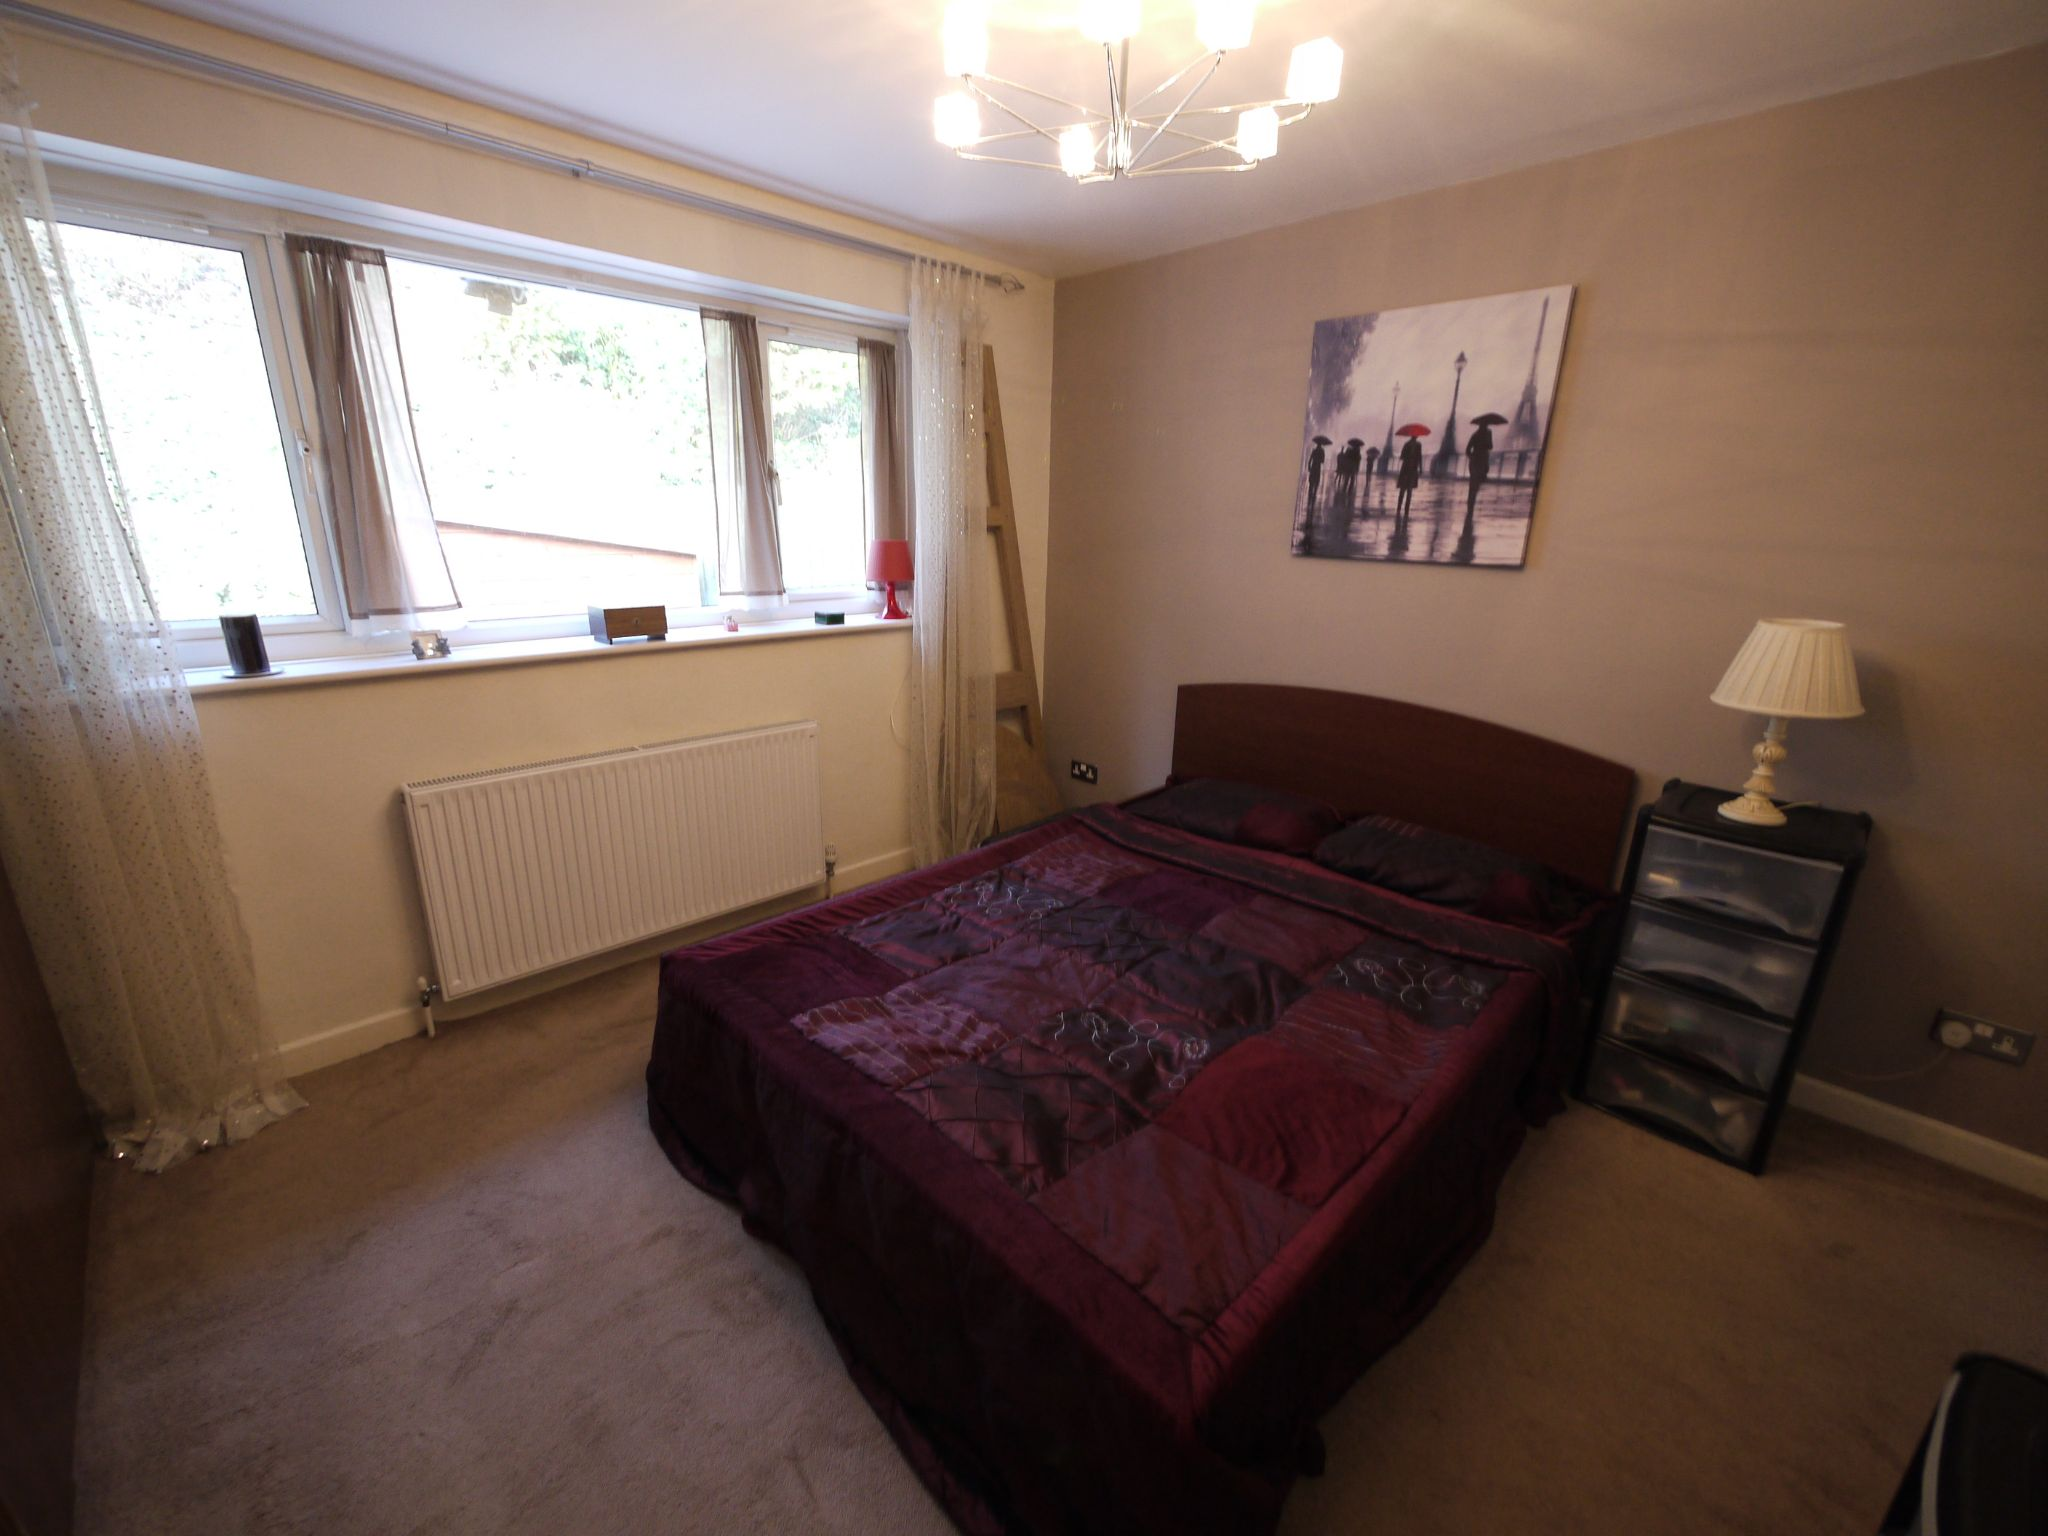 4 bedroom semi-detached house SSTC in Brighouse - Bed 1.